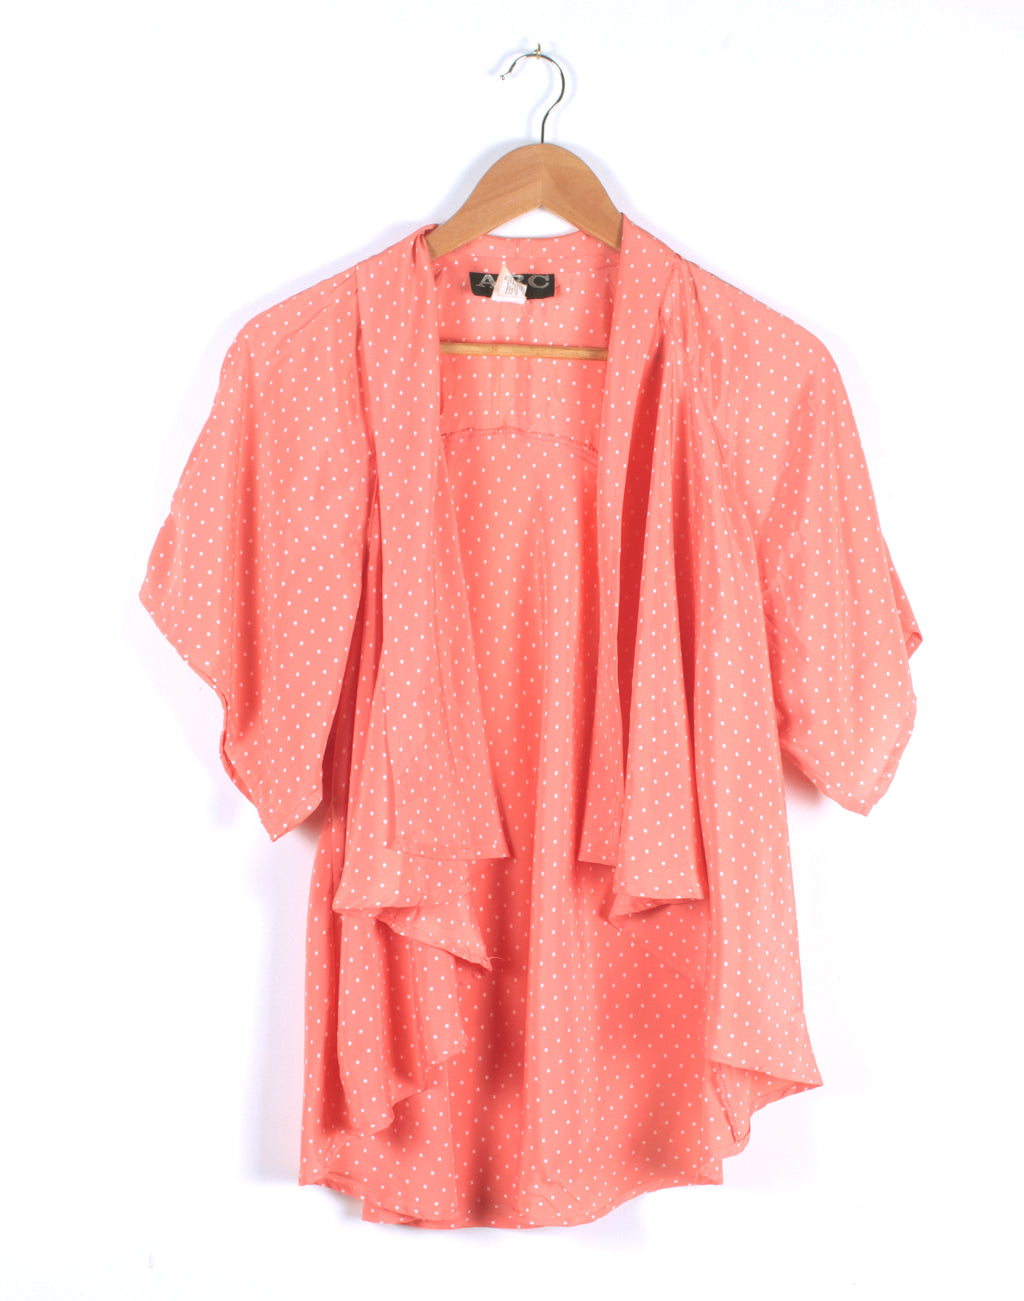 Arc Sydney Peach Spot Waterfall Shirt